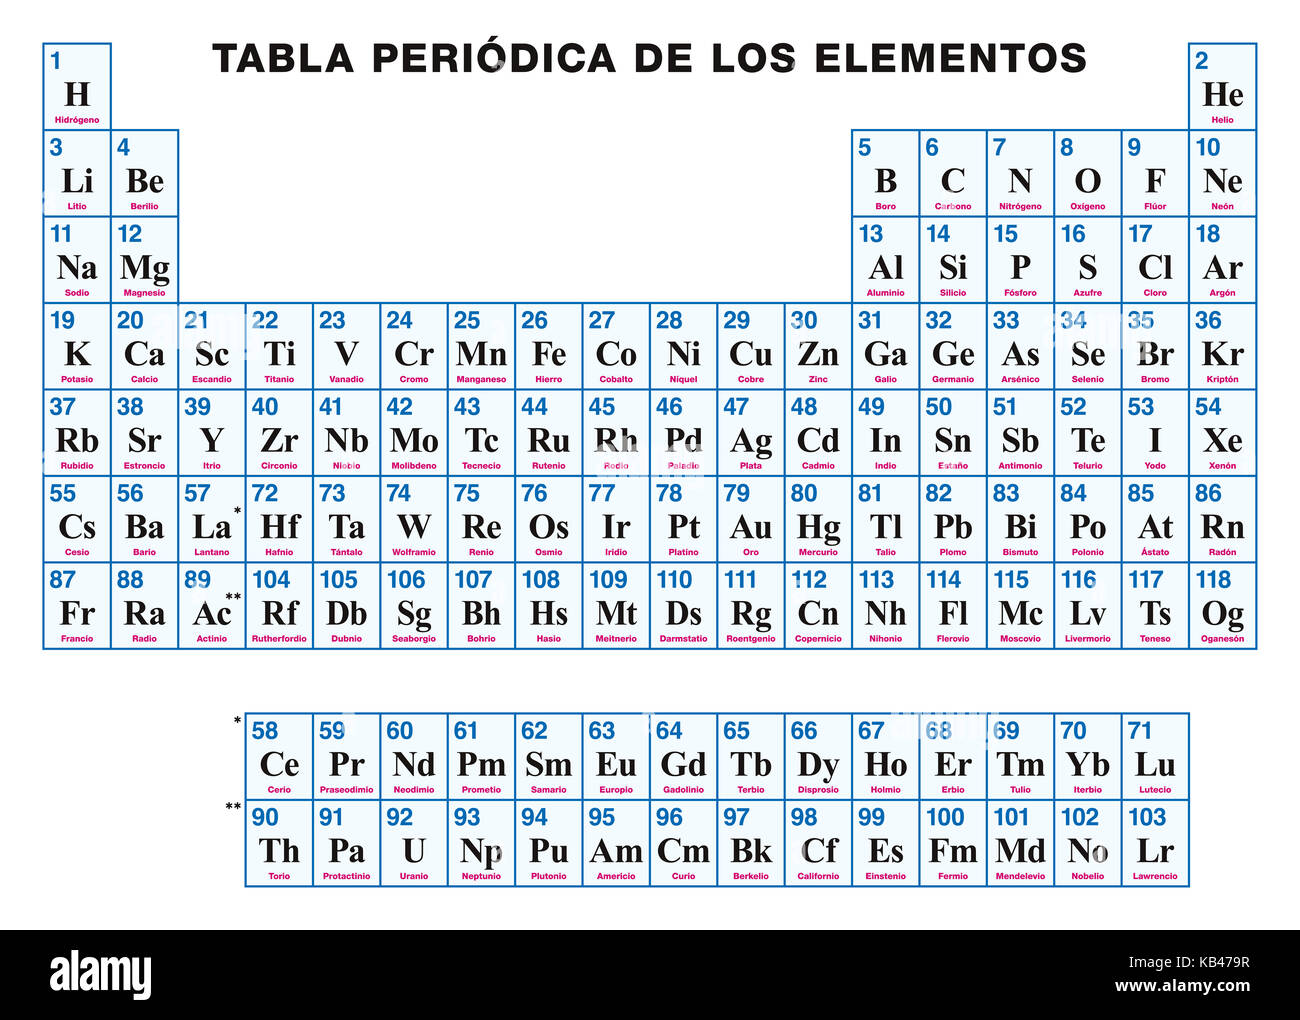 Periodic Table Of The Elements. SPANISH. Tabular Arrangement Of Chemical  Elements With Their Atomic Numbers, Symbols And Names. 118 Confirmed  Elements